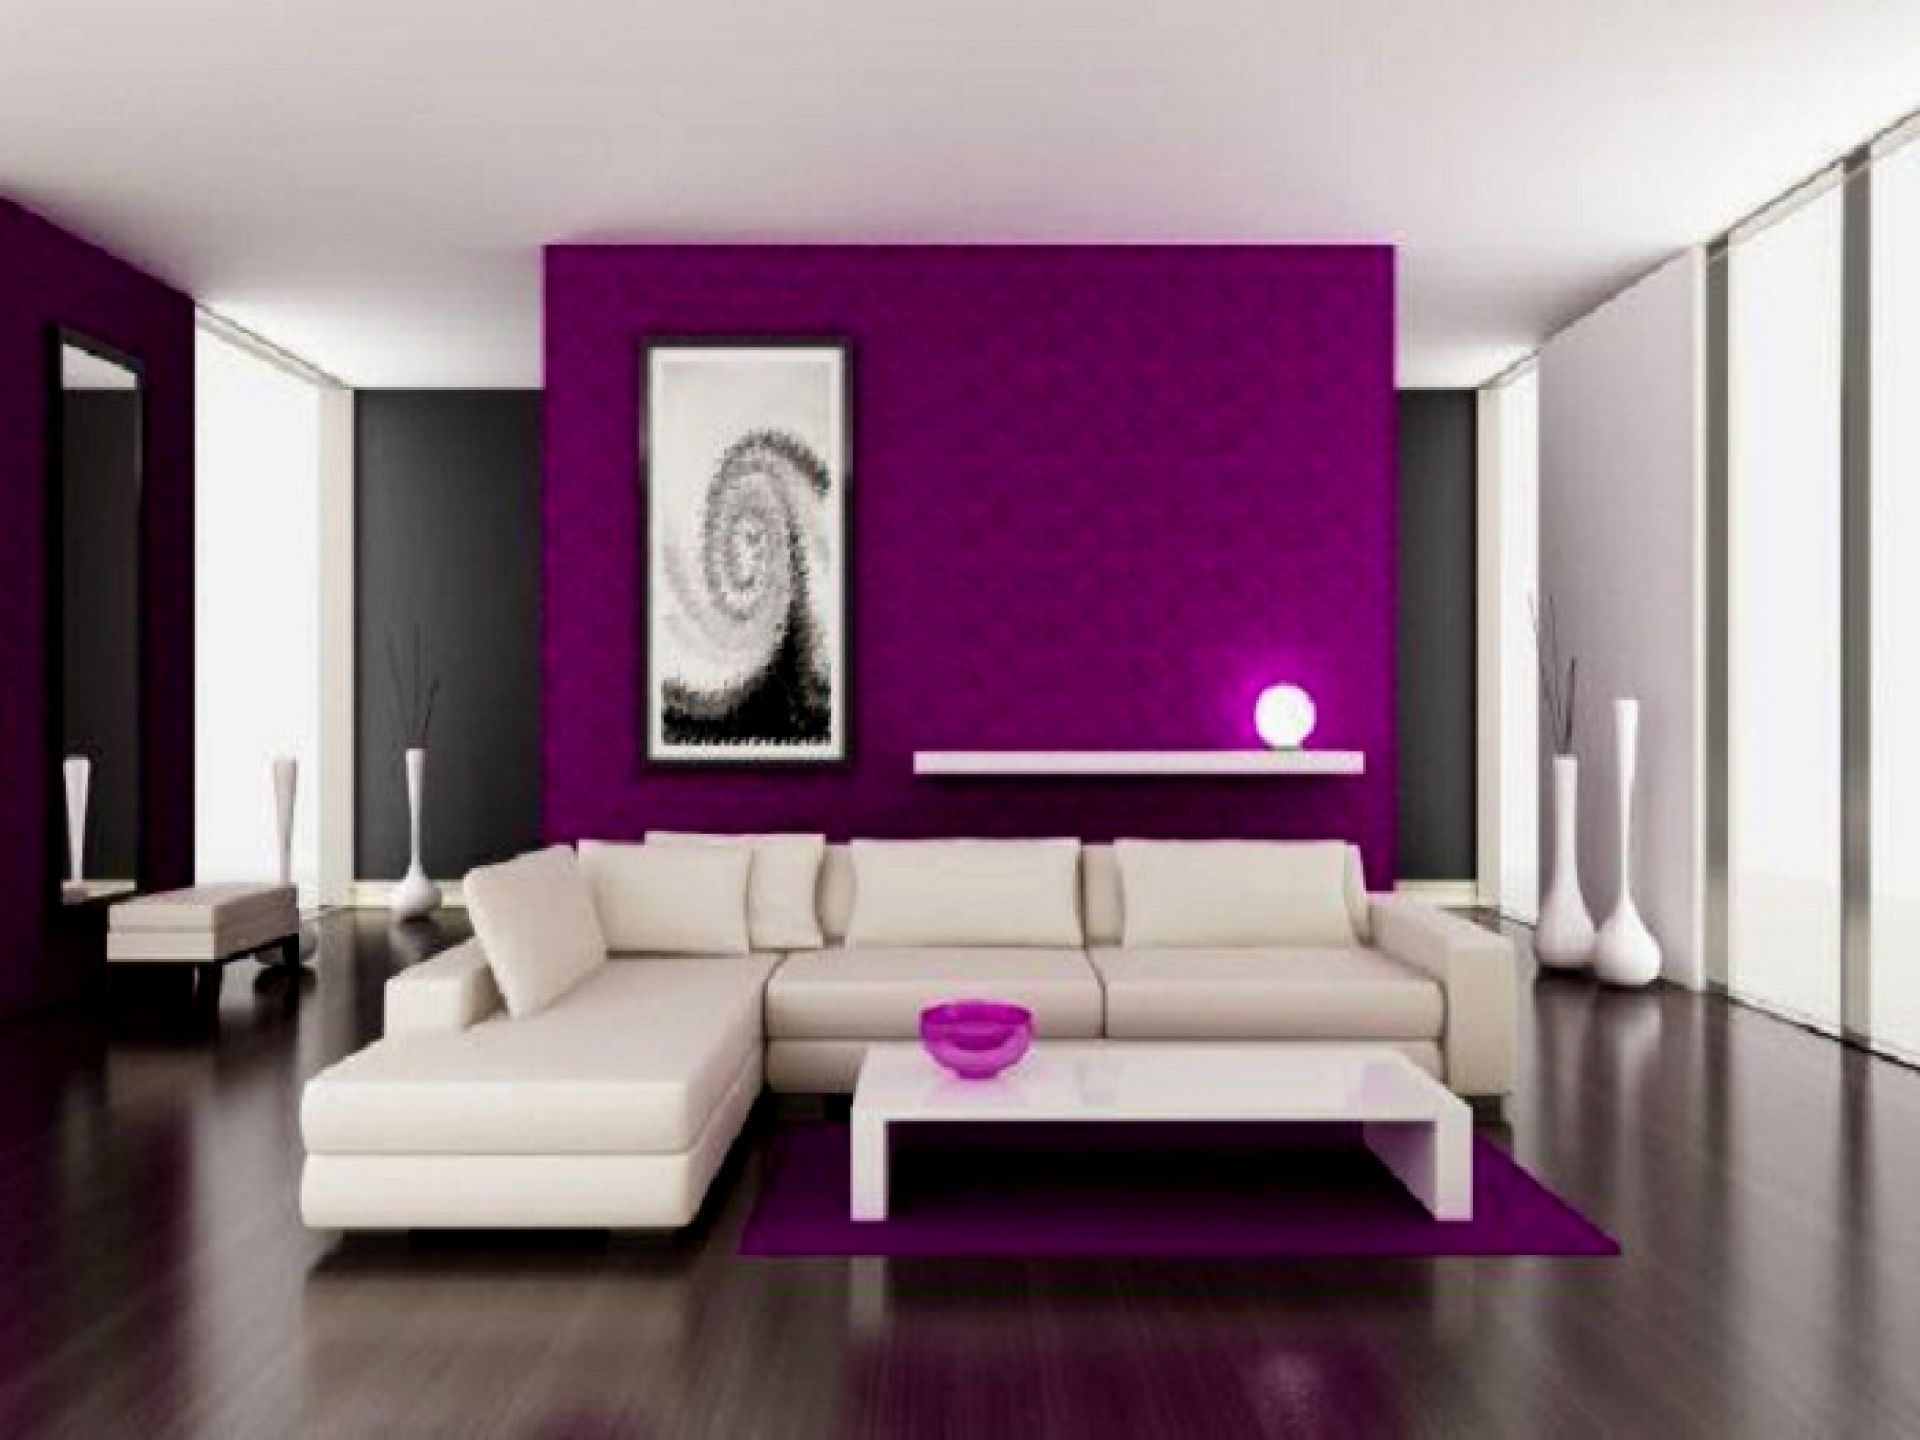 ikea room most purple chairs lavender dining living accessories ideas furniture